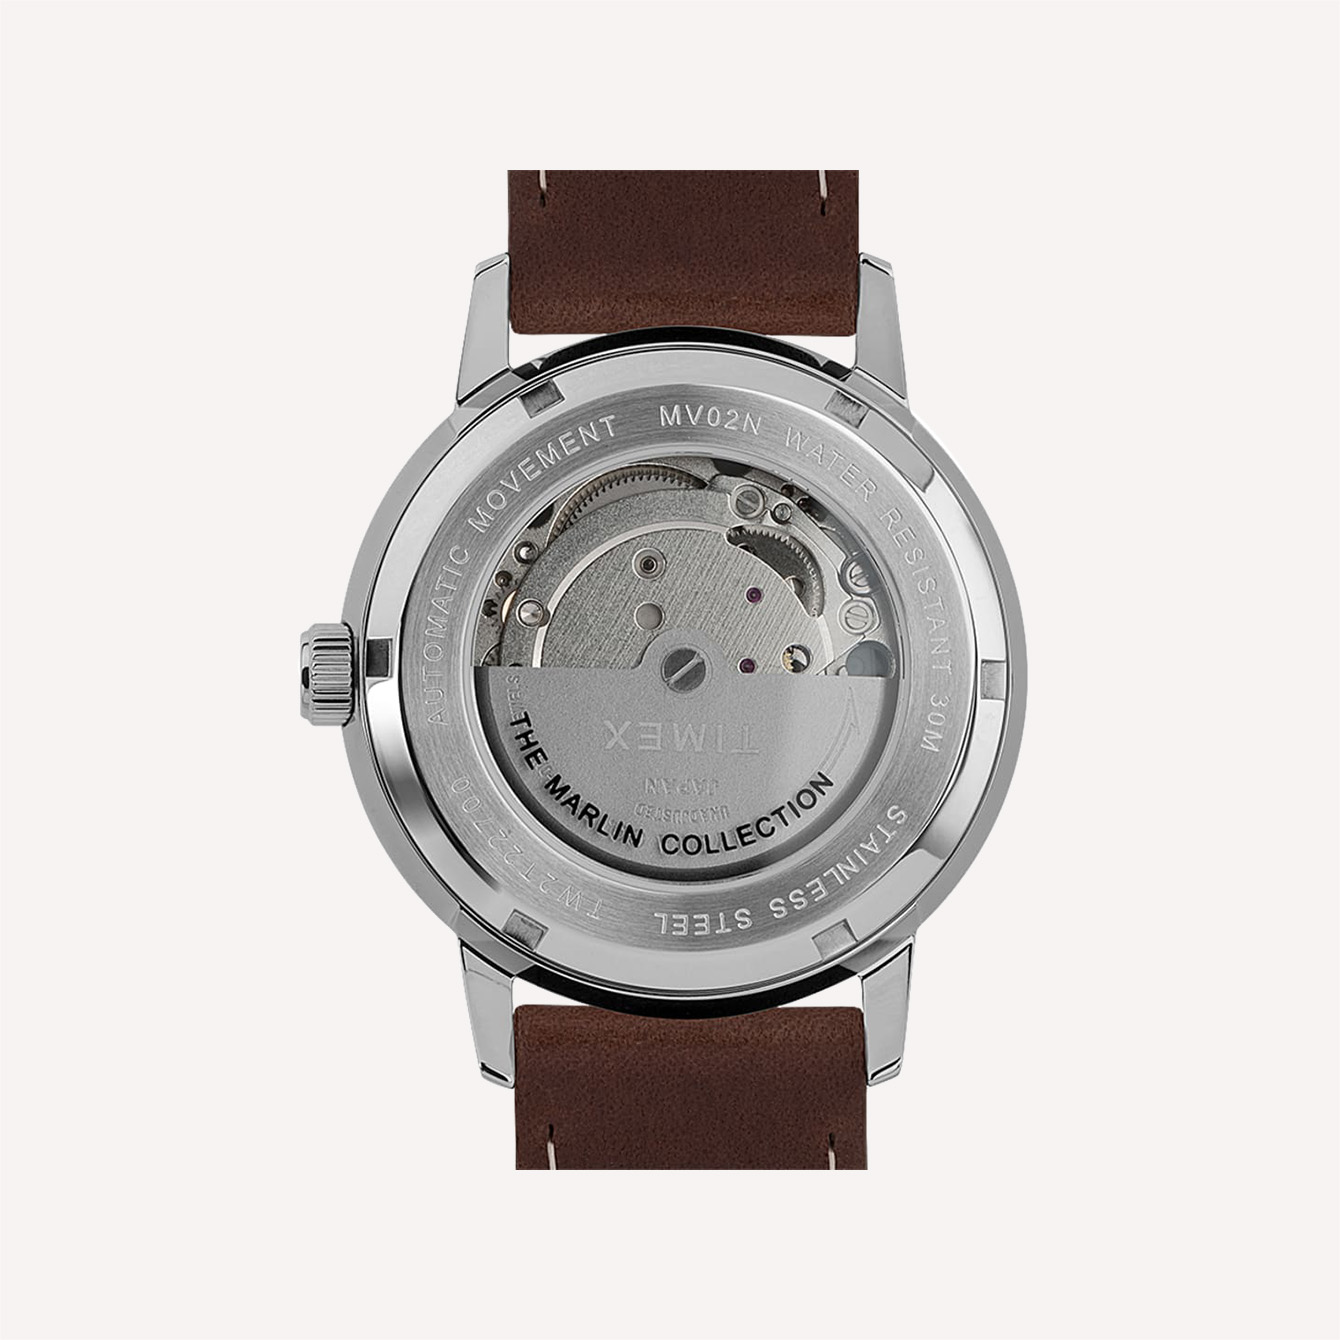 MARLIN AUTOMATIC 40MM LEATHER STRAP WATCH BACK SIDE